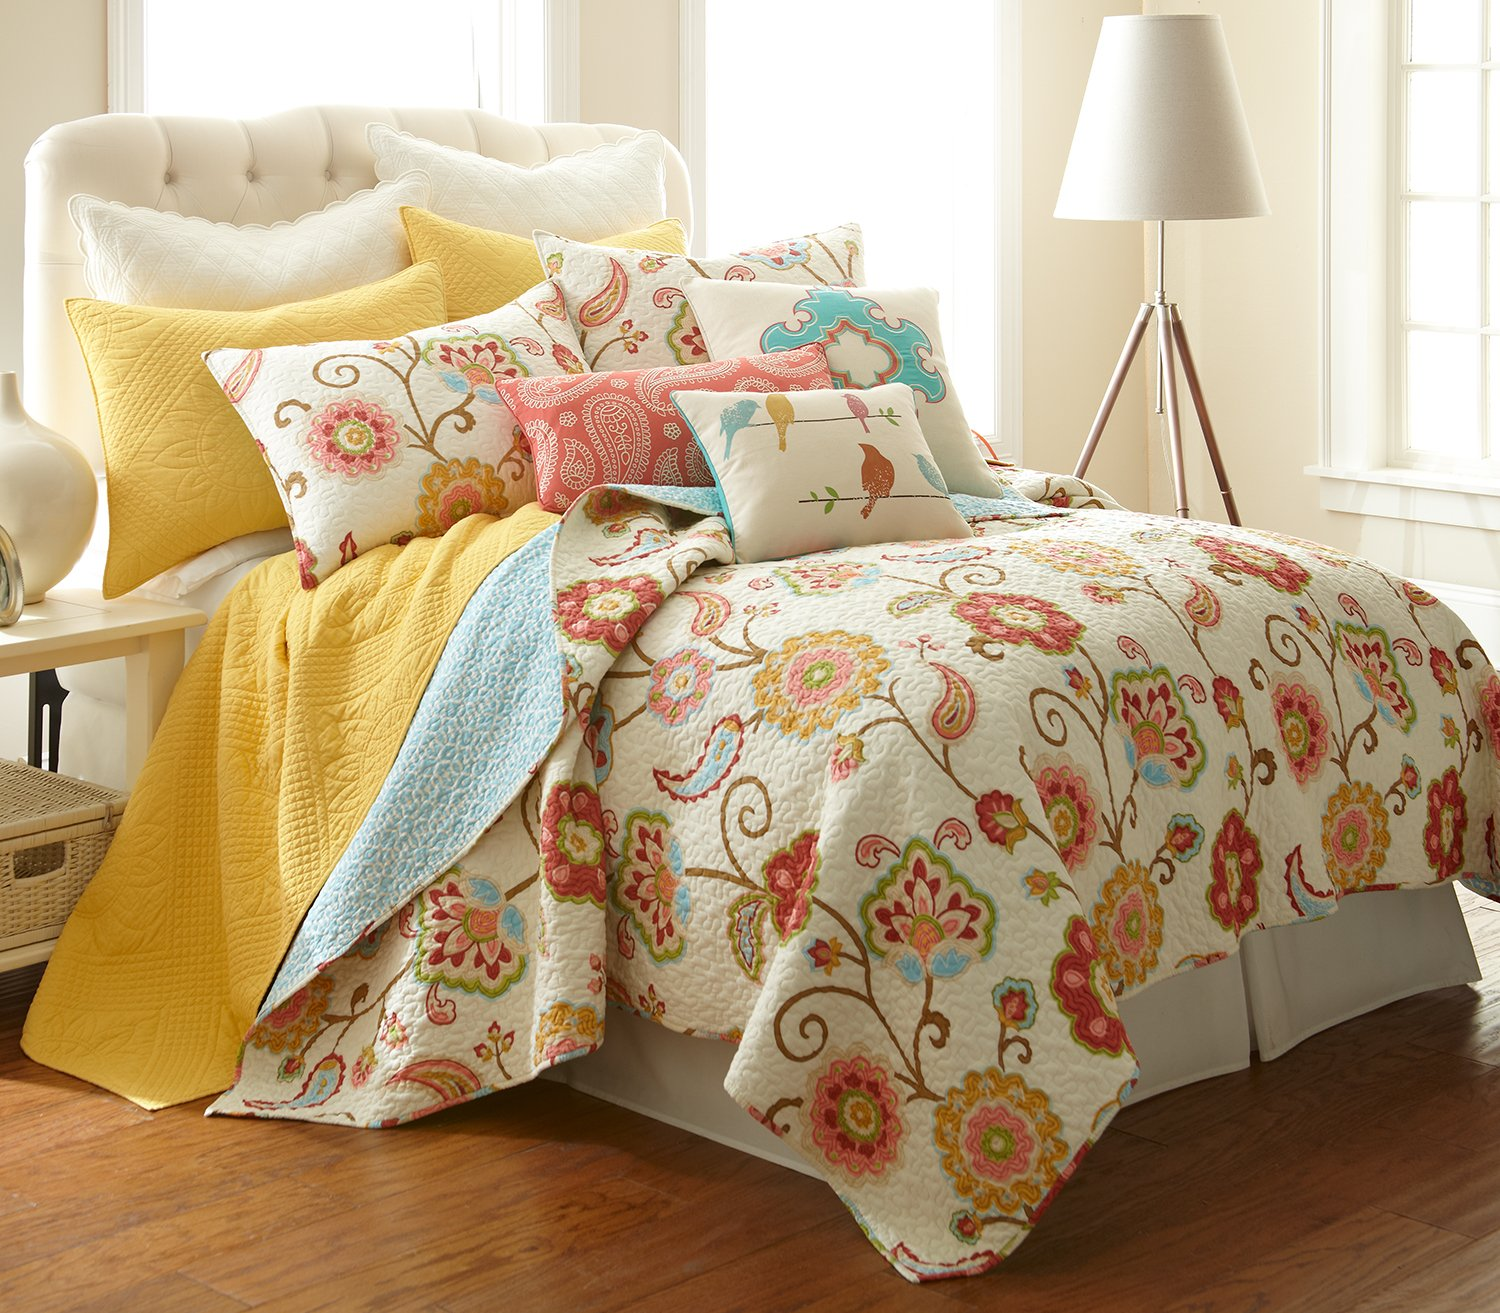 amazoncom ashbury spring king quilt set home  kitchen -